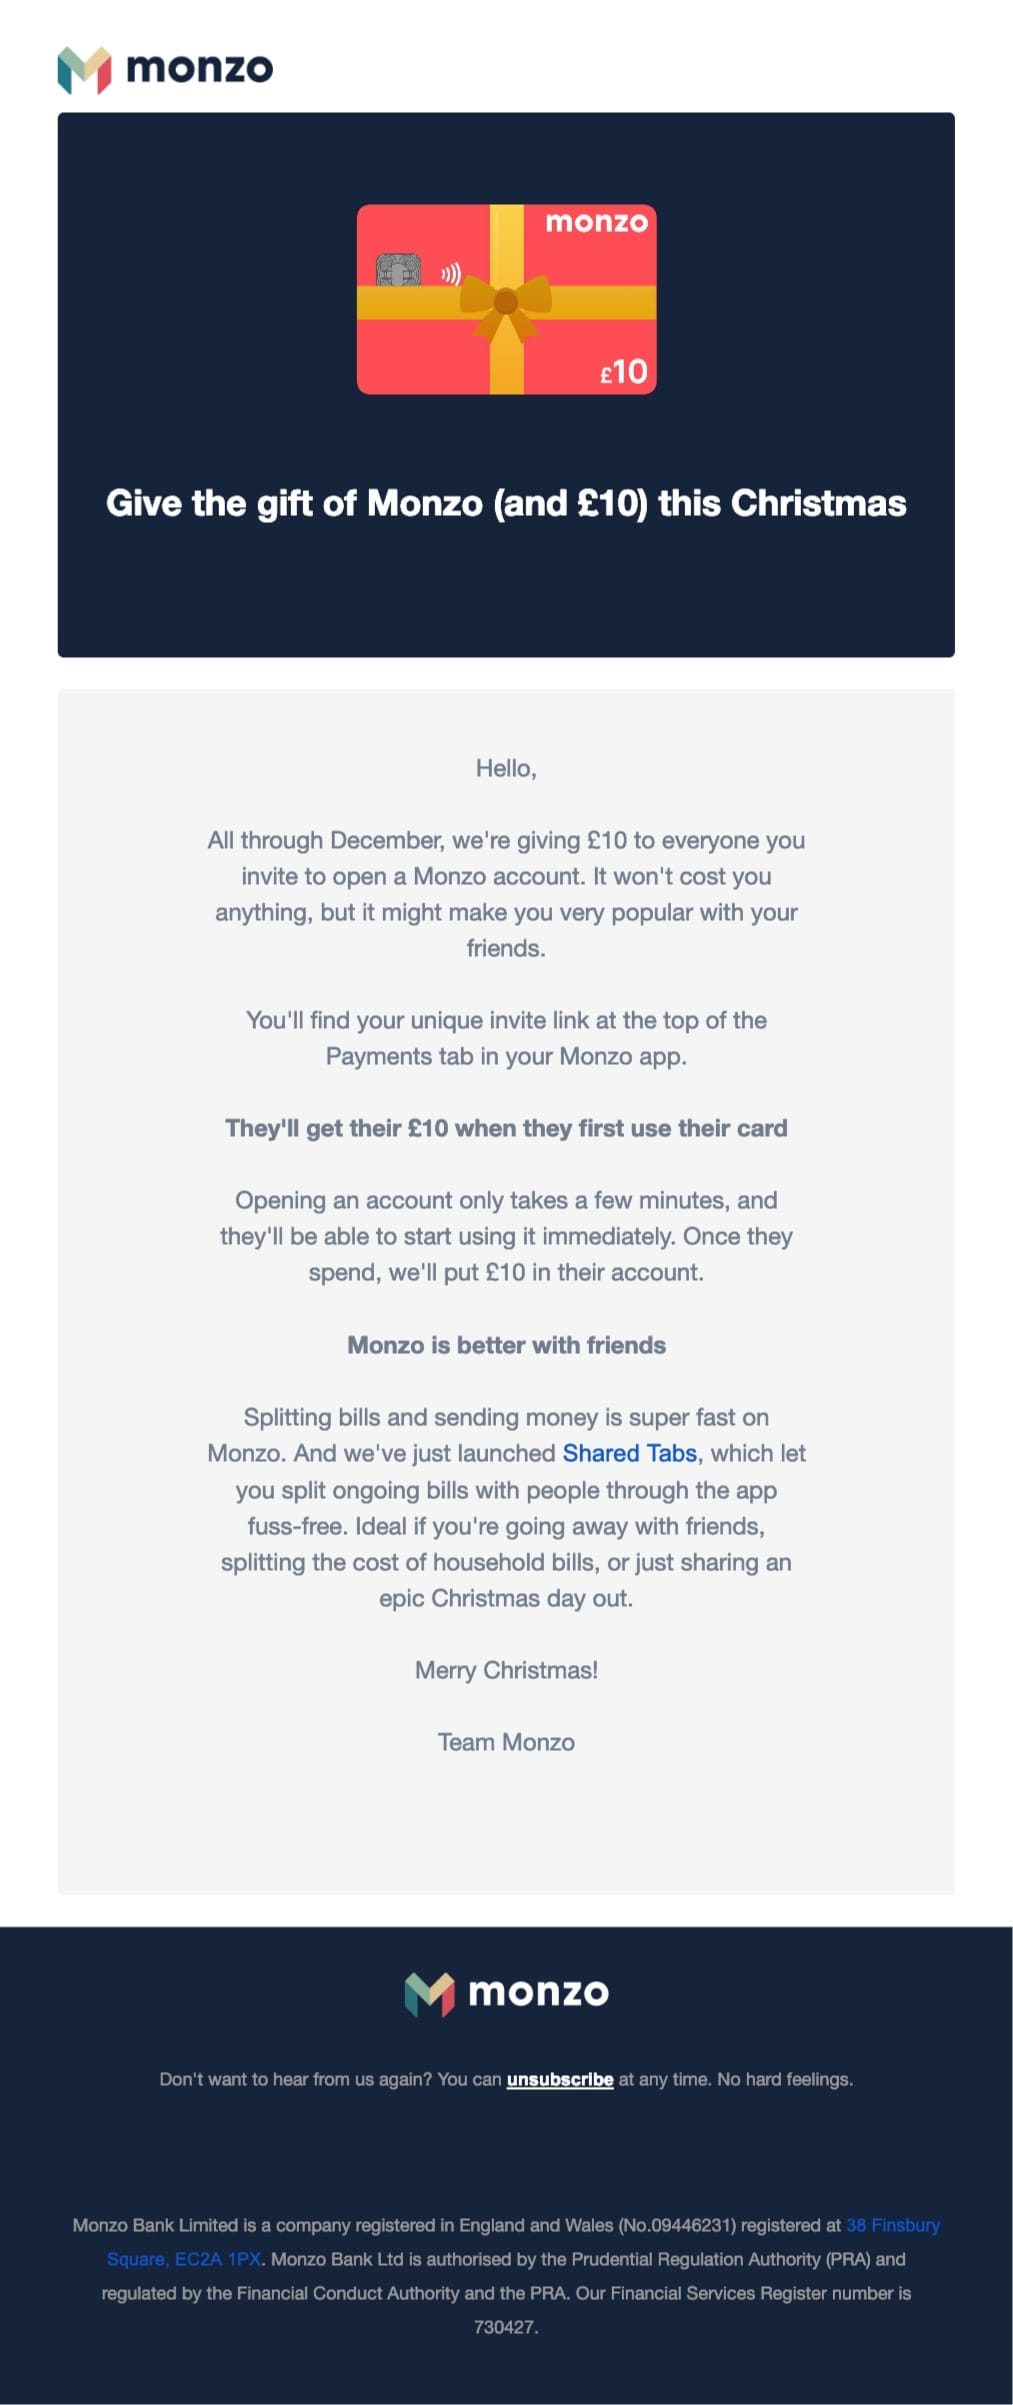 promotional email example monzo (holiday offer)